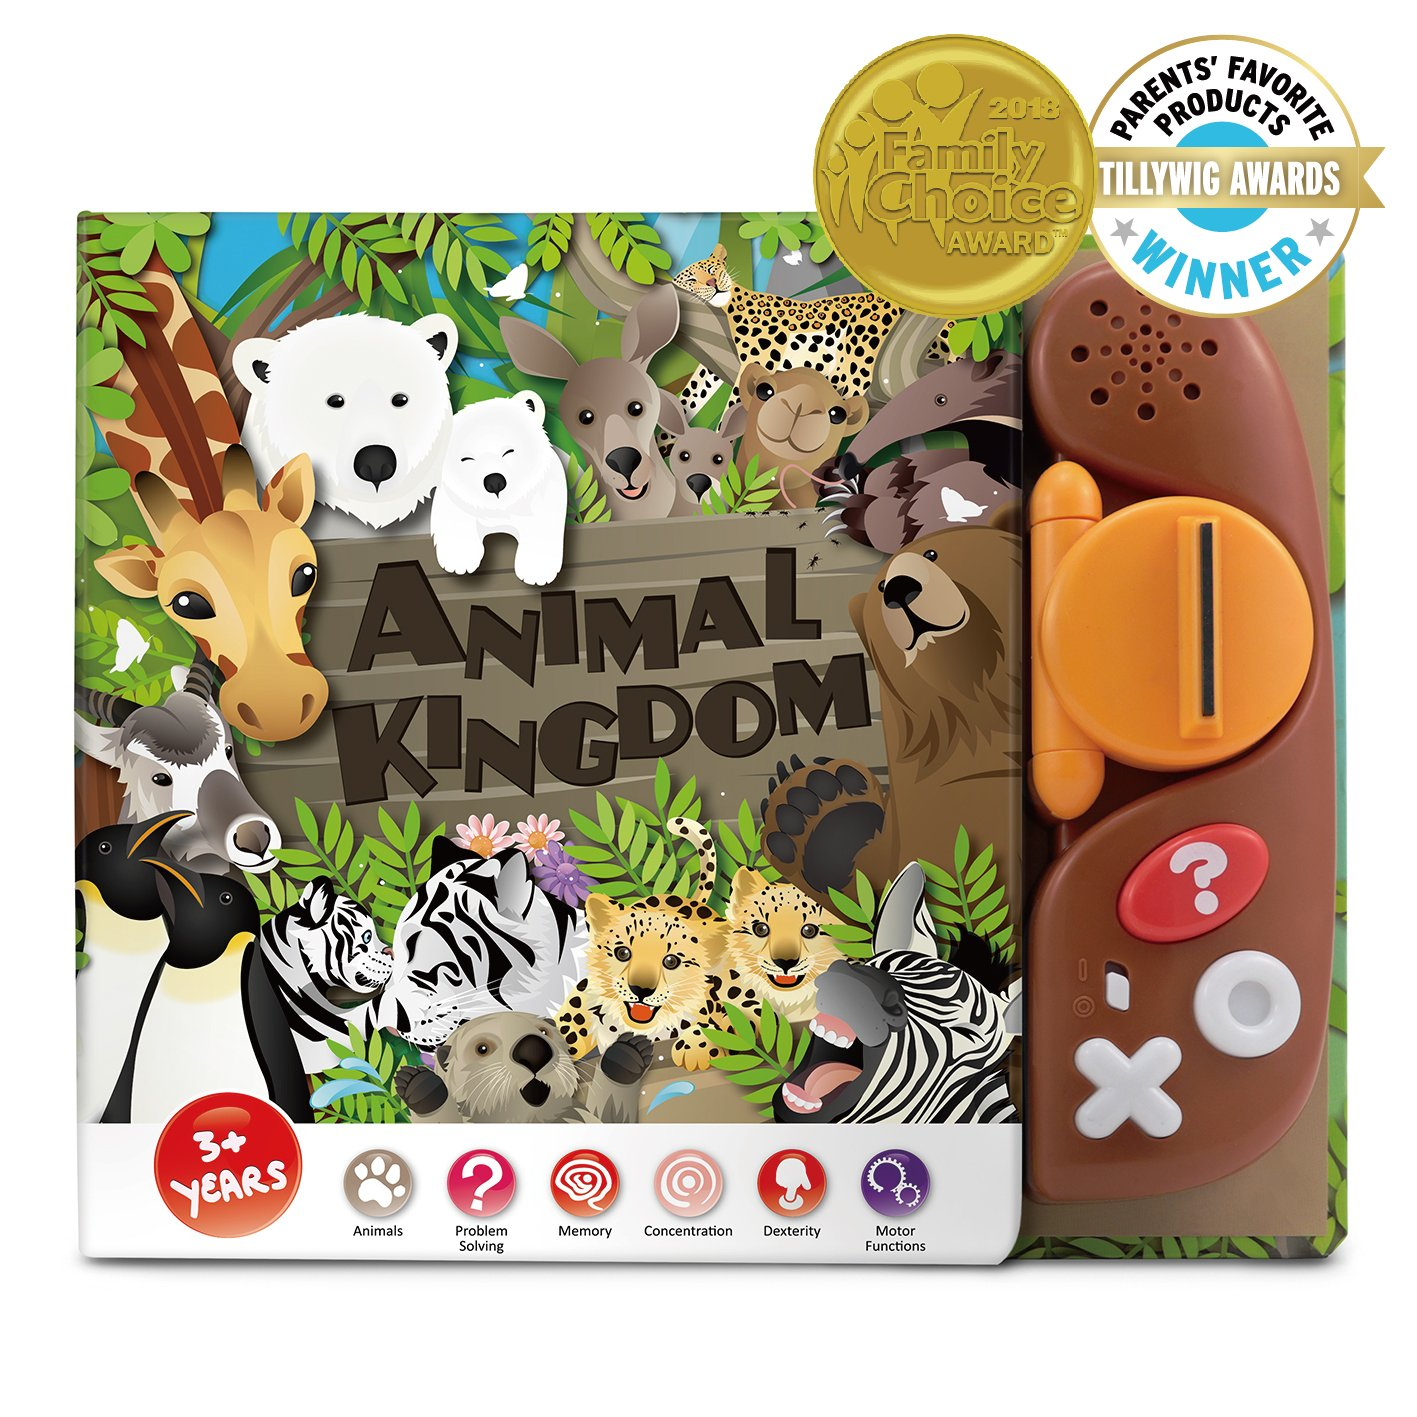 Best Learning Animal Kingdom K...